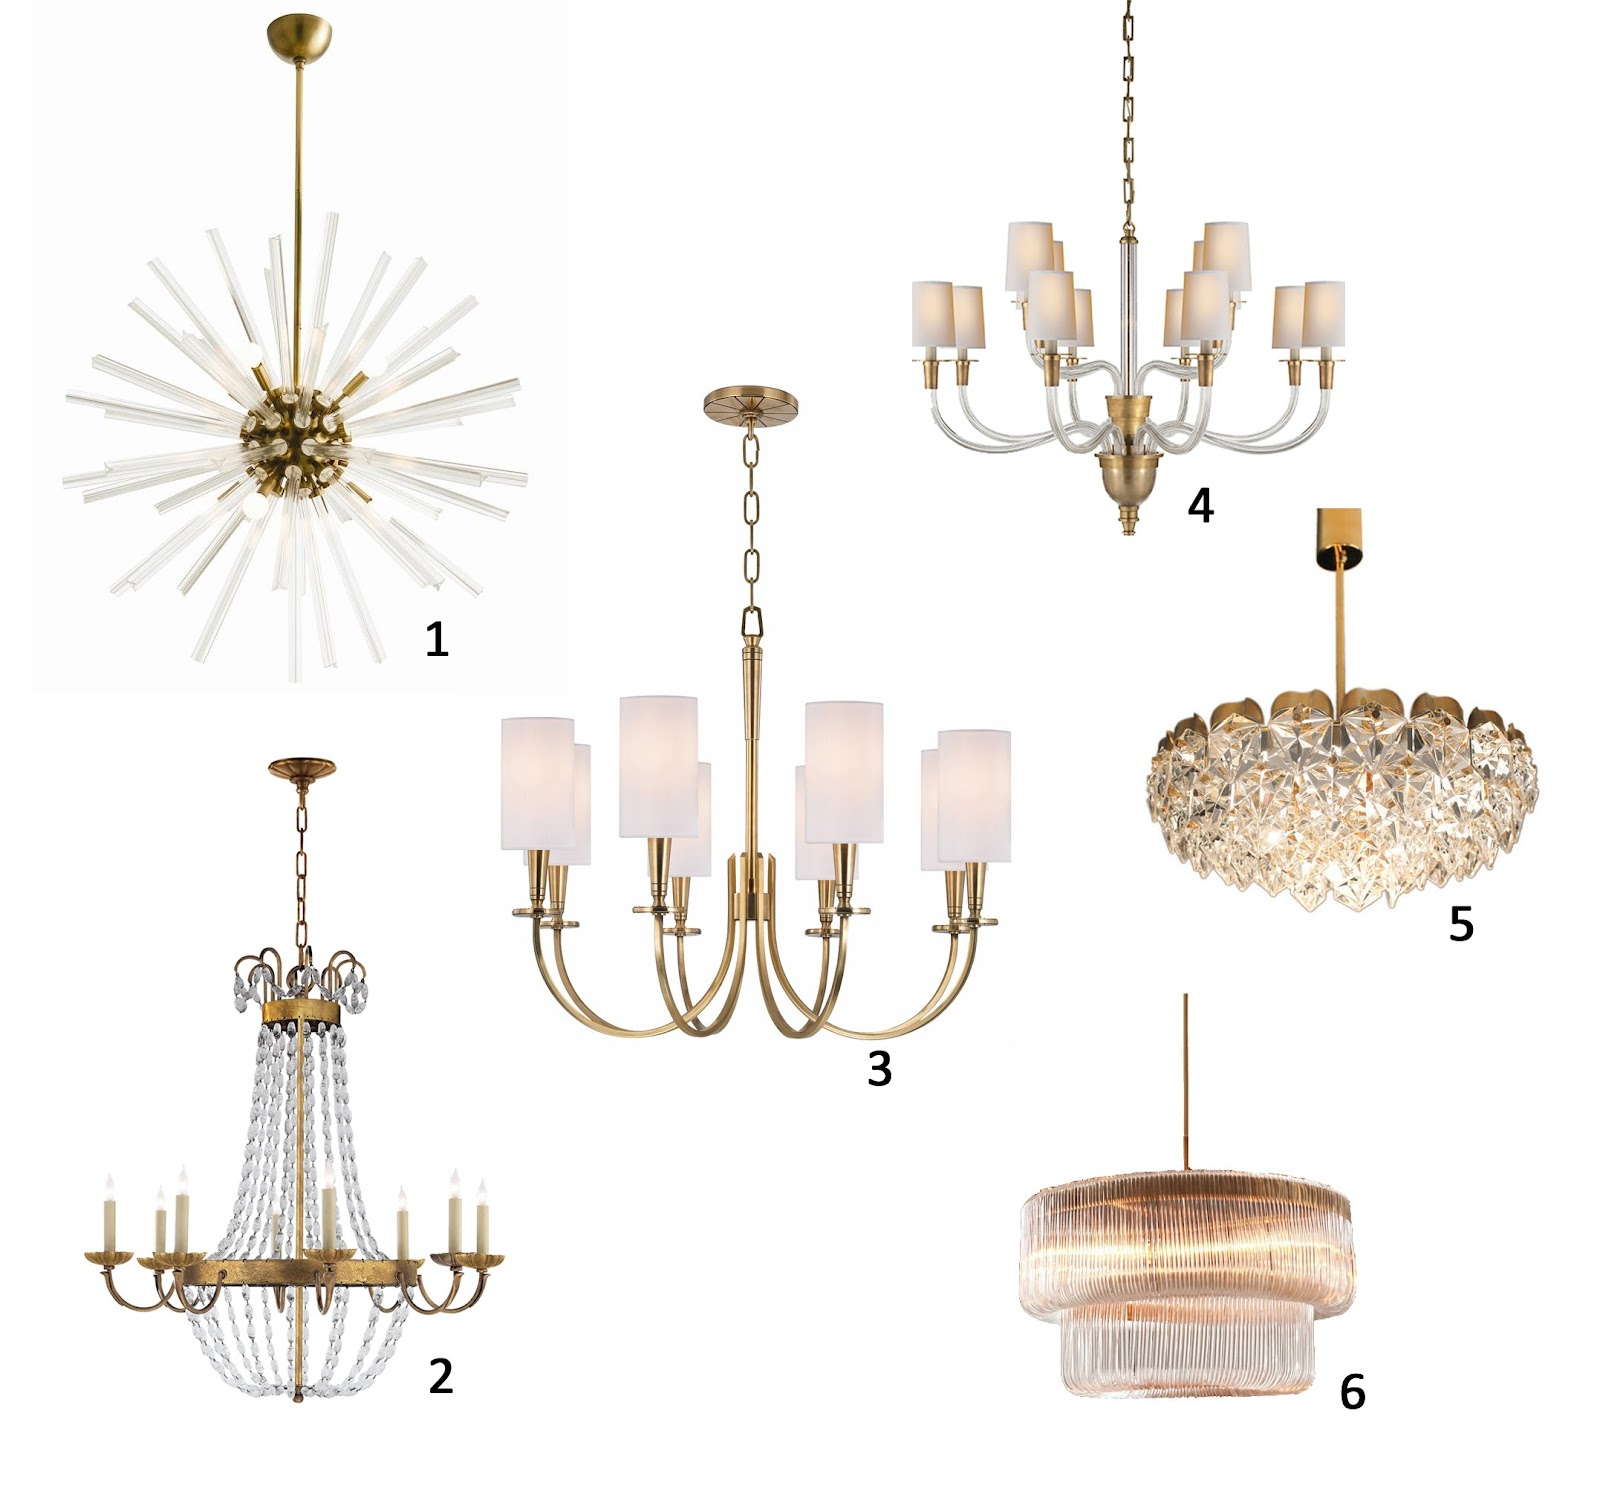 AM Dolce Vita A Roundup of My Favourite Brass Chandeliers